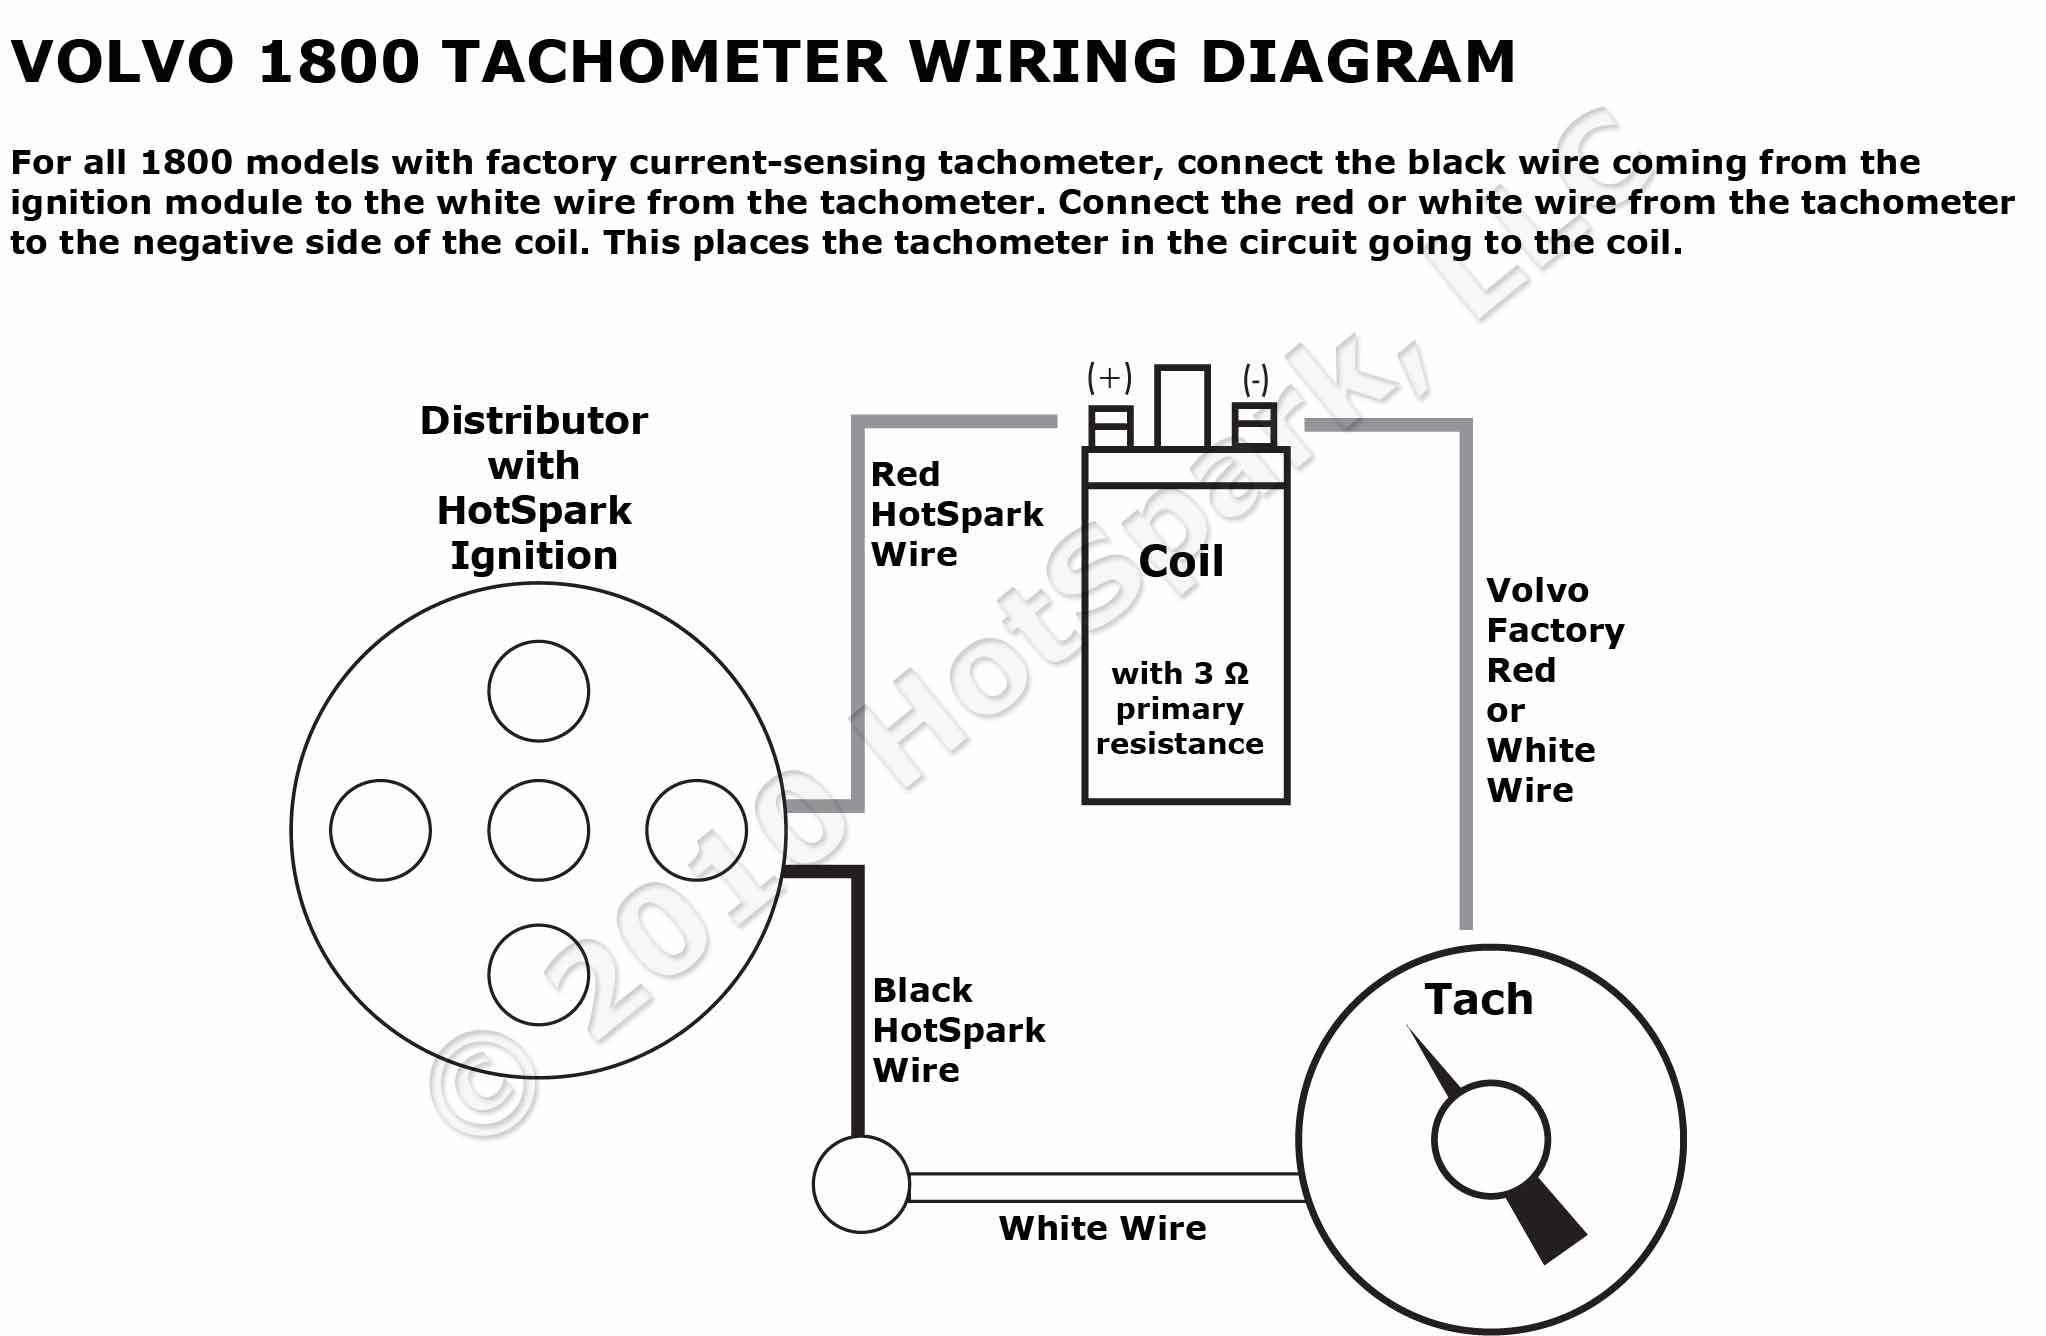 starter solenoid wiring diagram with Volvo 1800 Wiring Diagram on Peterbilt Starter Relay Wiring Diagram moreover Watch also Index additionally Ez Go Golf Cart Wiring Diagram Pdf as well C6 Corvette Wiring Diagram.